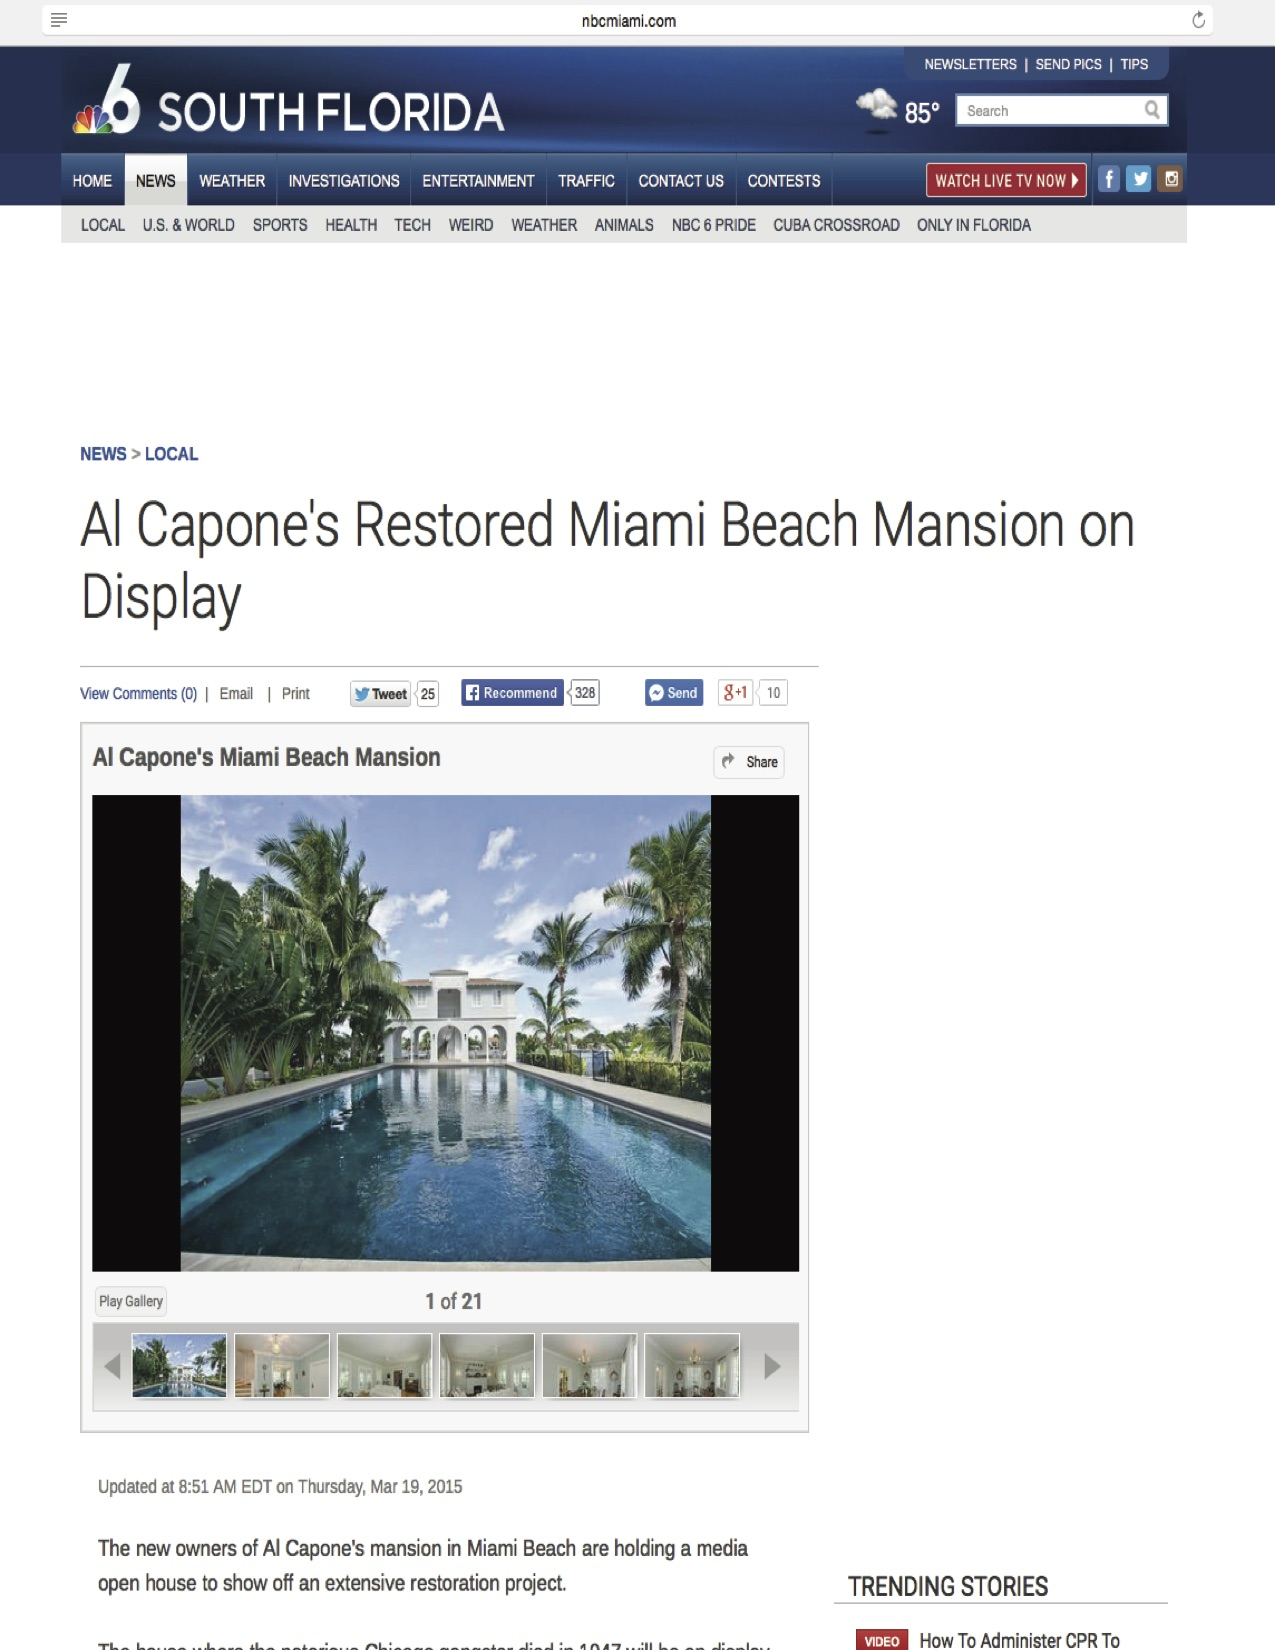 """<p><strong>NBC News</strong><a href=""""http://www.nbcmiami.com/news/local/Al-Capones-Restored-Miami-Beach-Mansion-On-Display-296724561.html#244633411"""" target=""""_blank"""">Watch Video →</a></p>"""